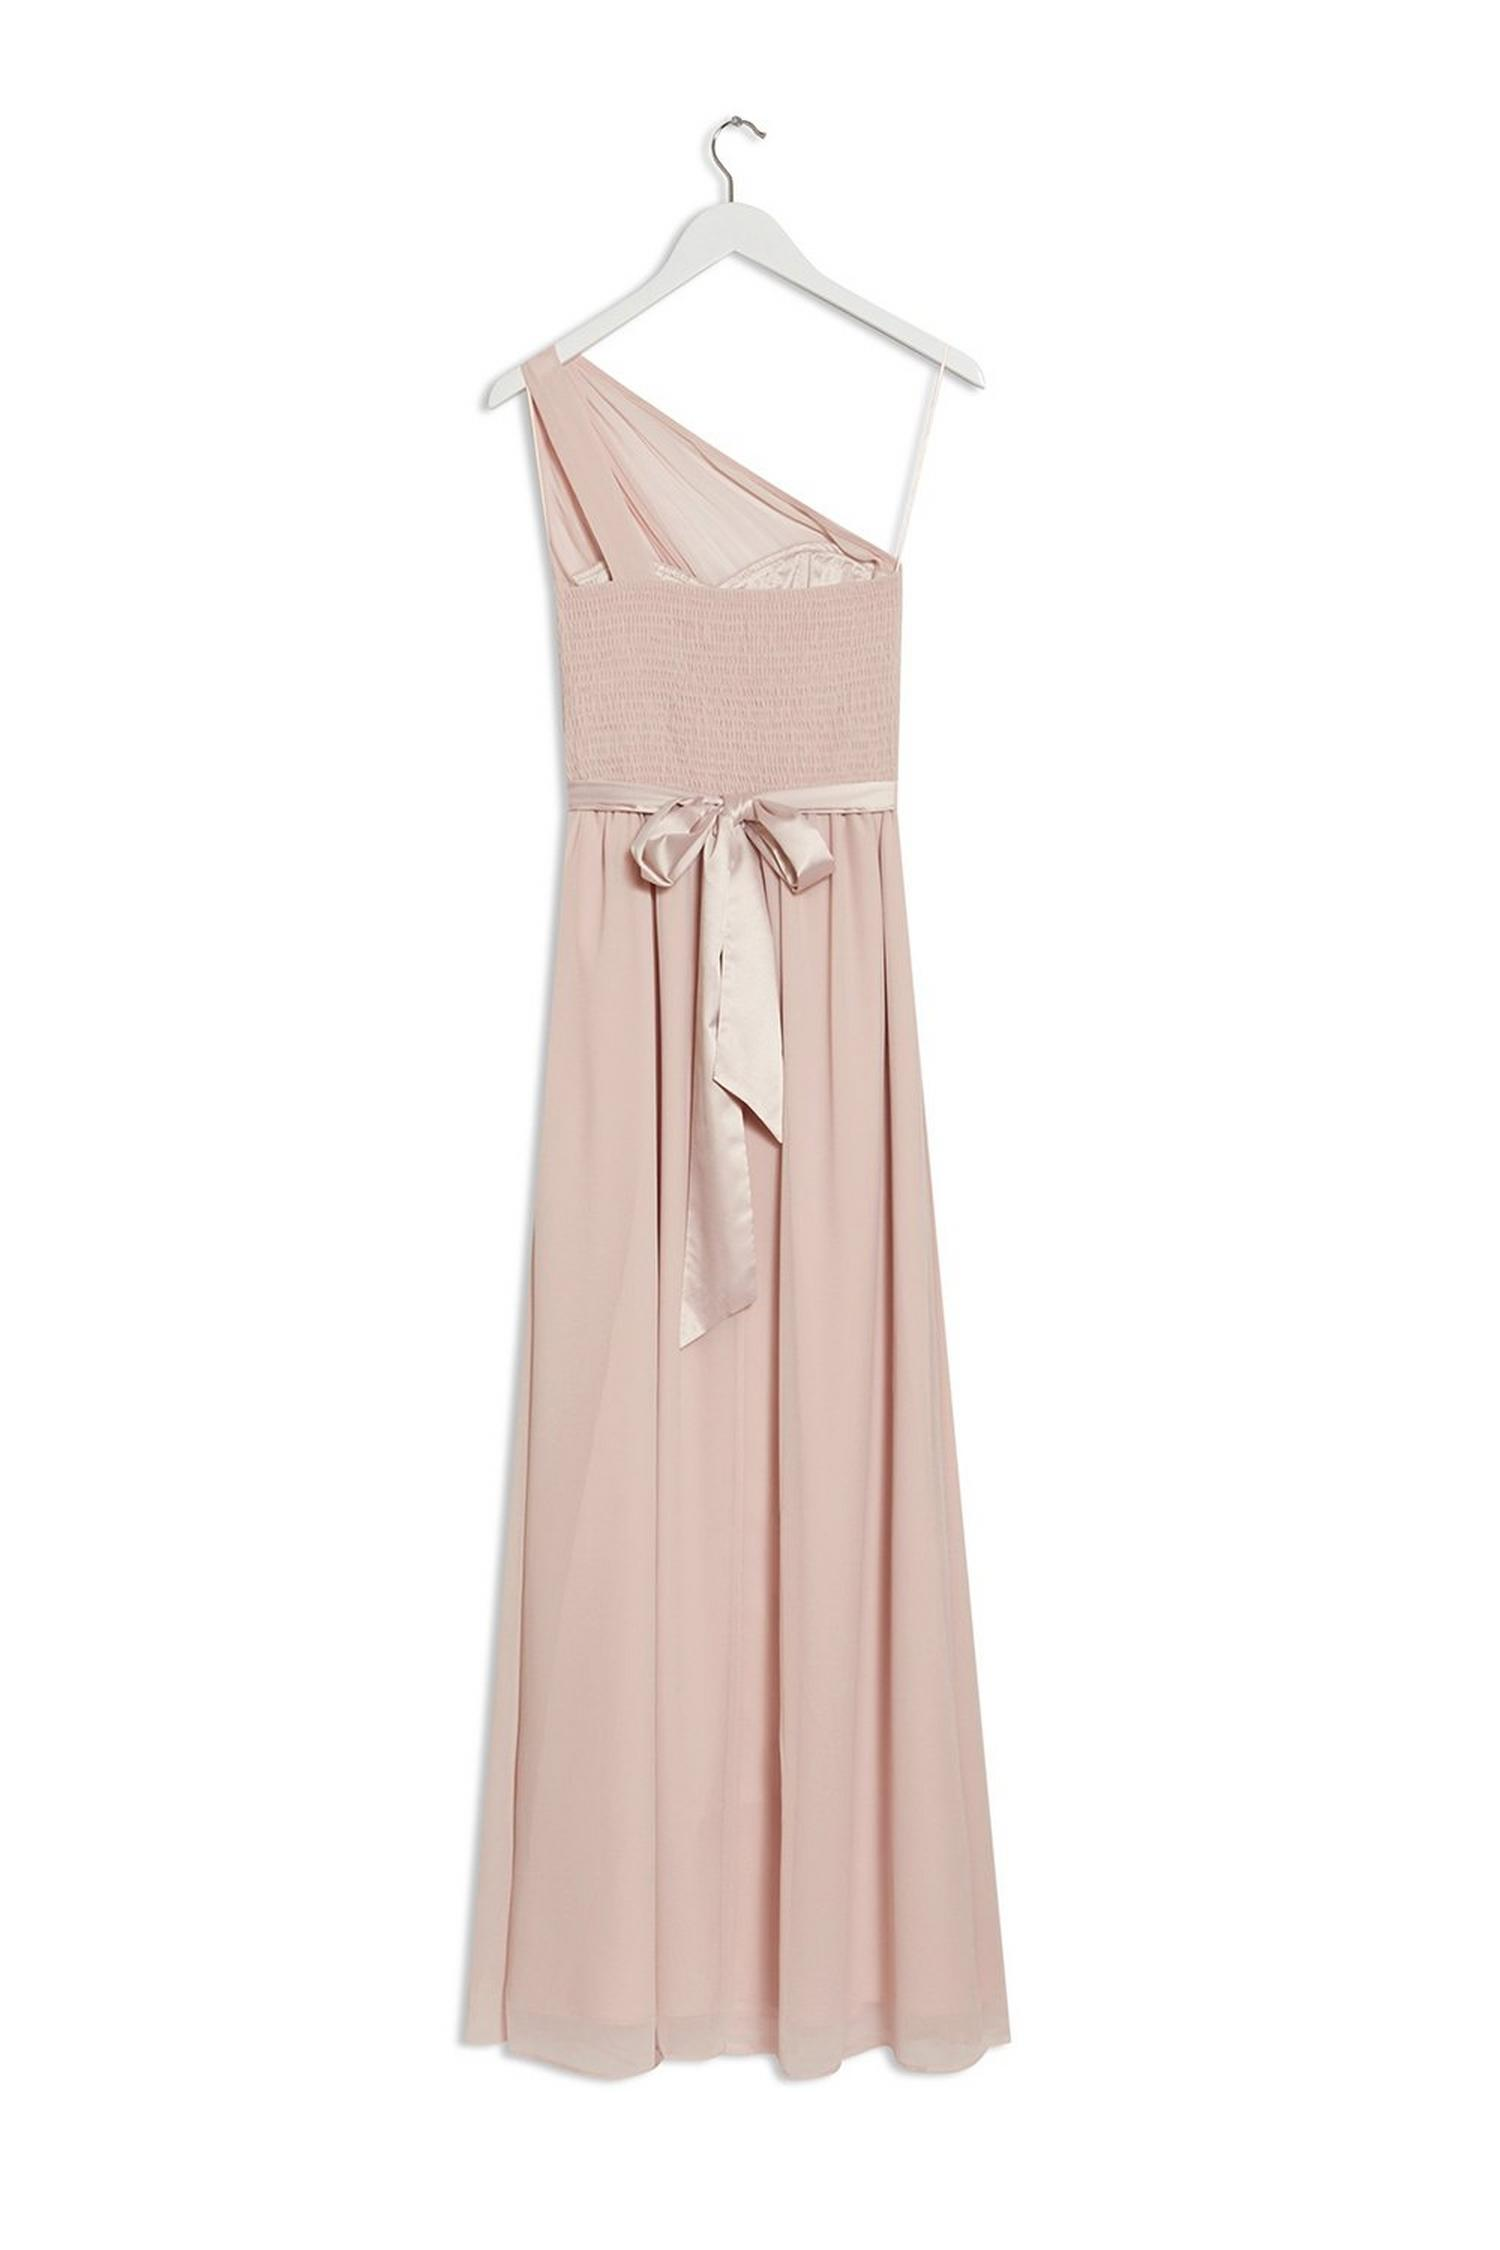 153 Blush Sadie One Shoulder Maxi Dress image number 2